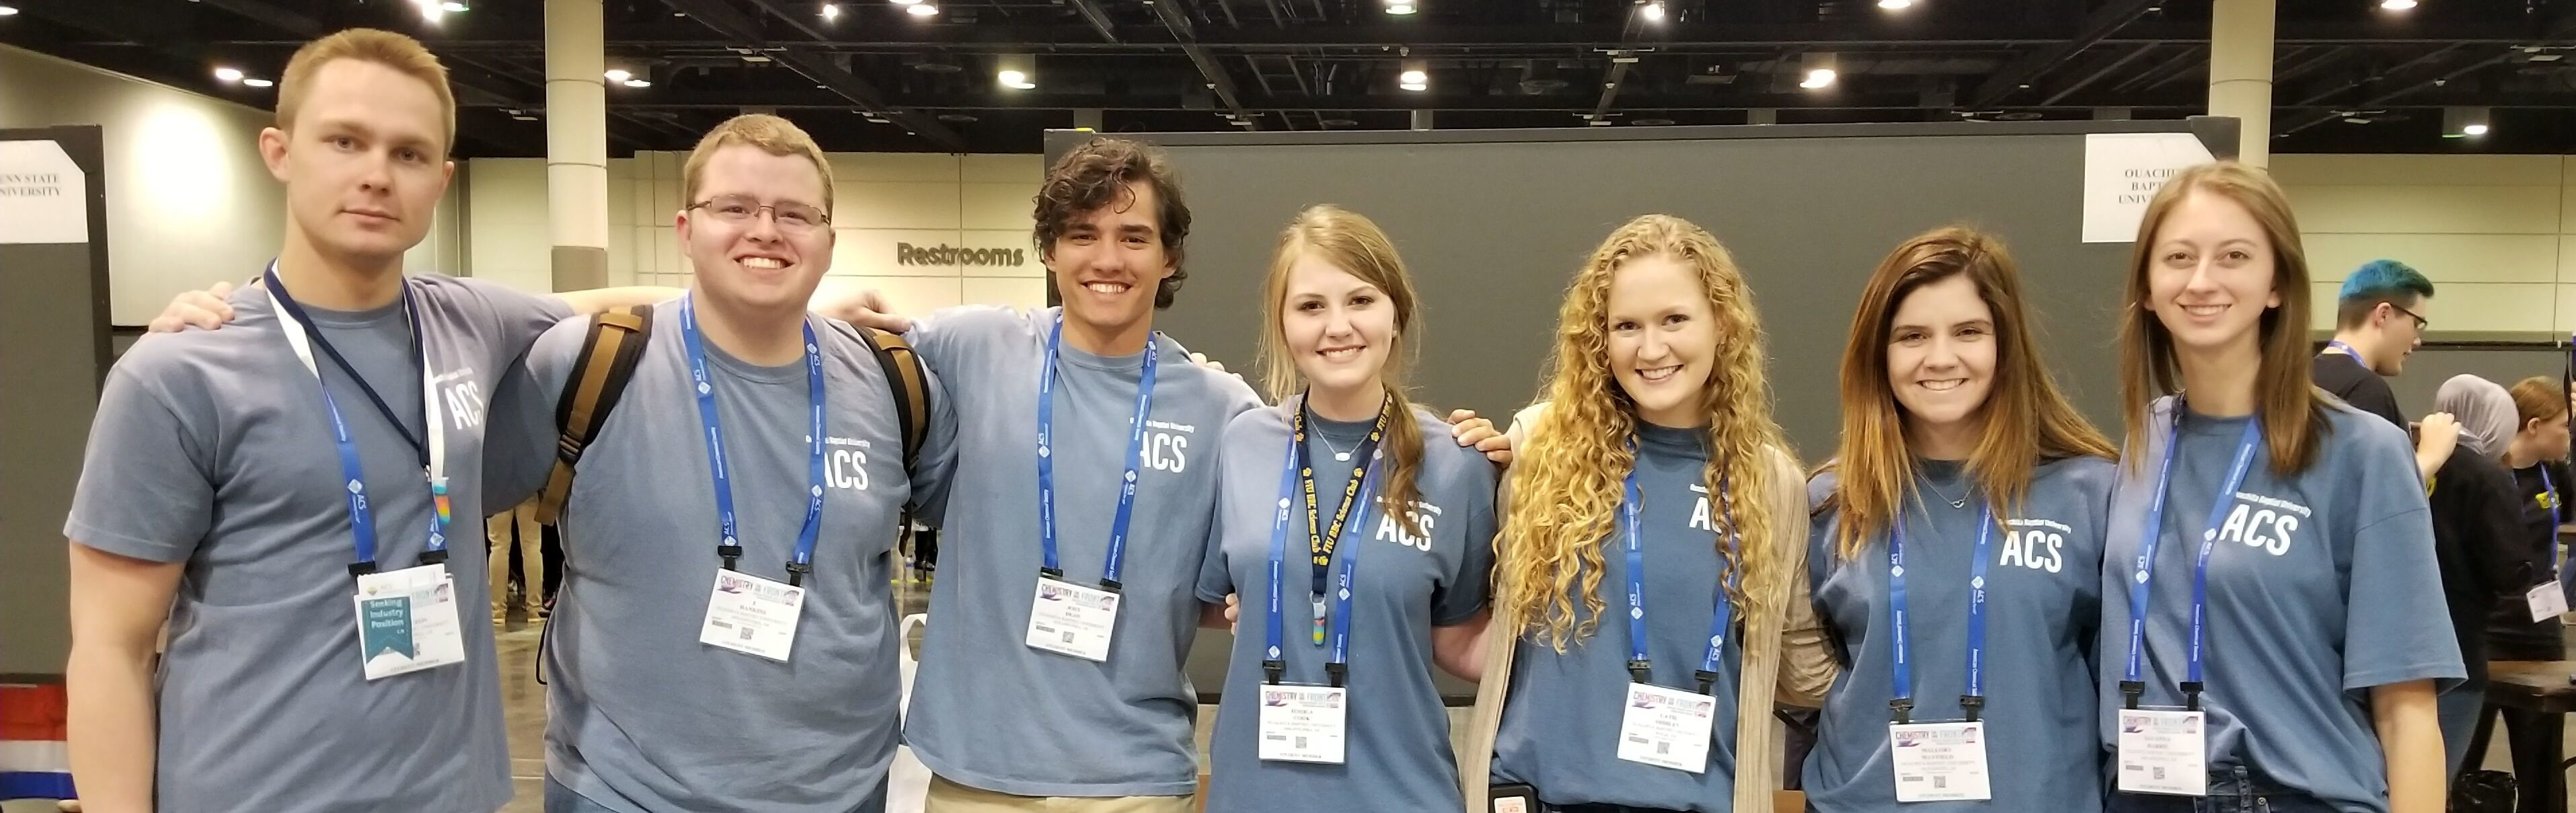 Seven Ouachita students presented research and participated in a demo-exchange at the American Chemical Society national Meeting and Exposition this spring, including (from left): Alex Podguzov, Travis Hankins, Joey Dean, Jessica Snelgrove, Catie Shirley, Mallory Mayfield and Savanna Harris. Photo by Sharon Hamilton.